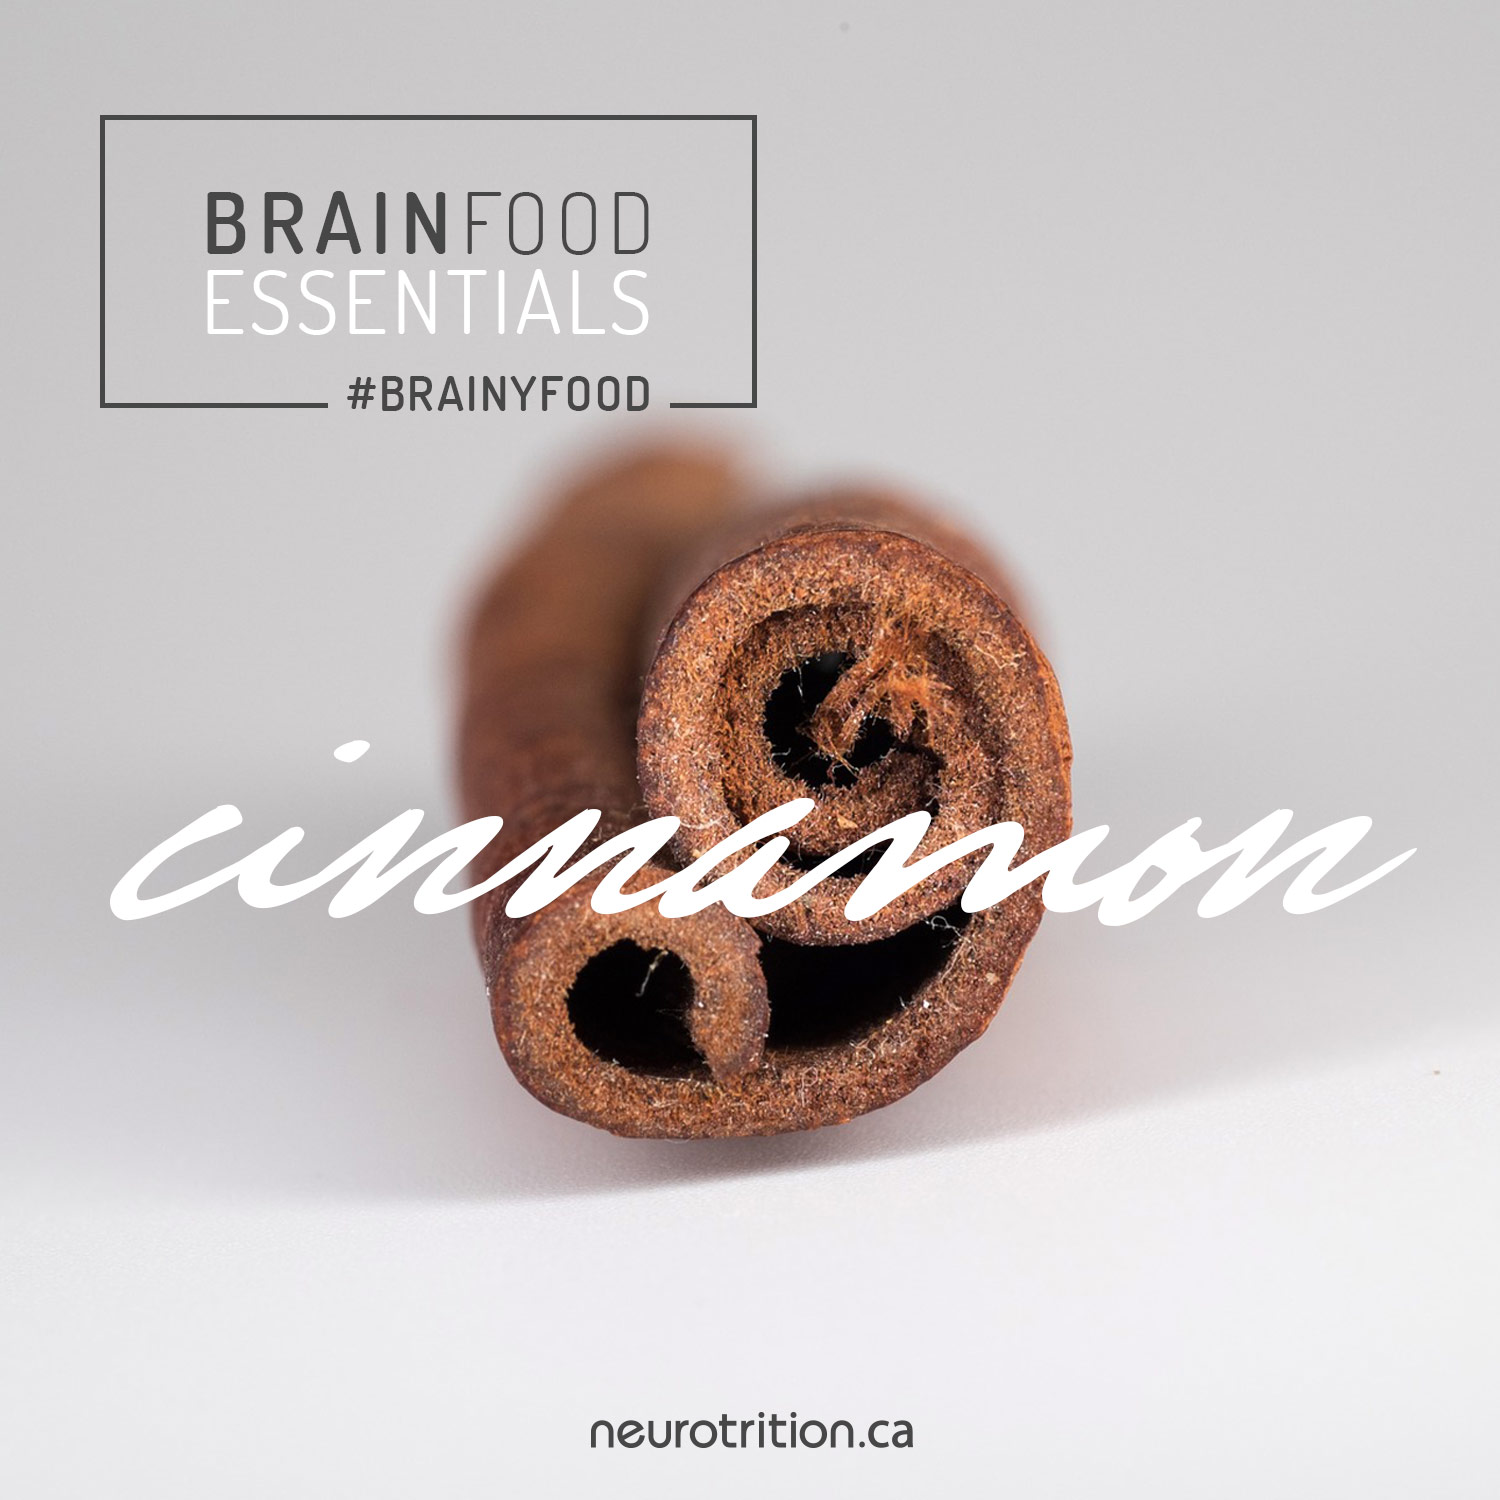 cinnamon as brain food